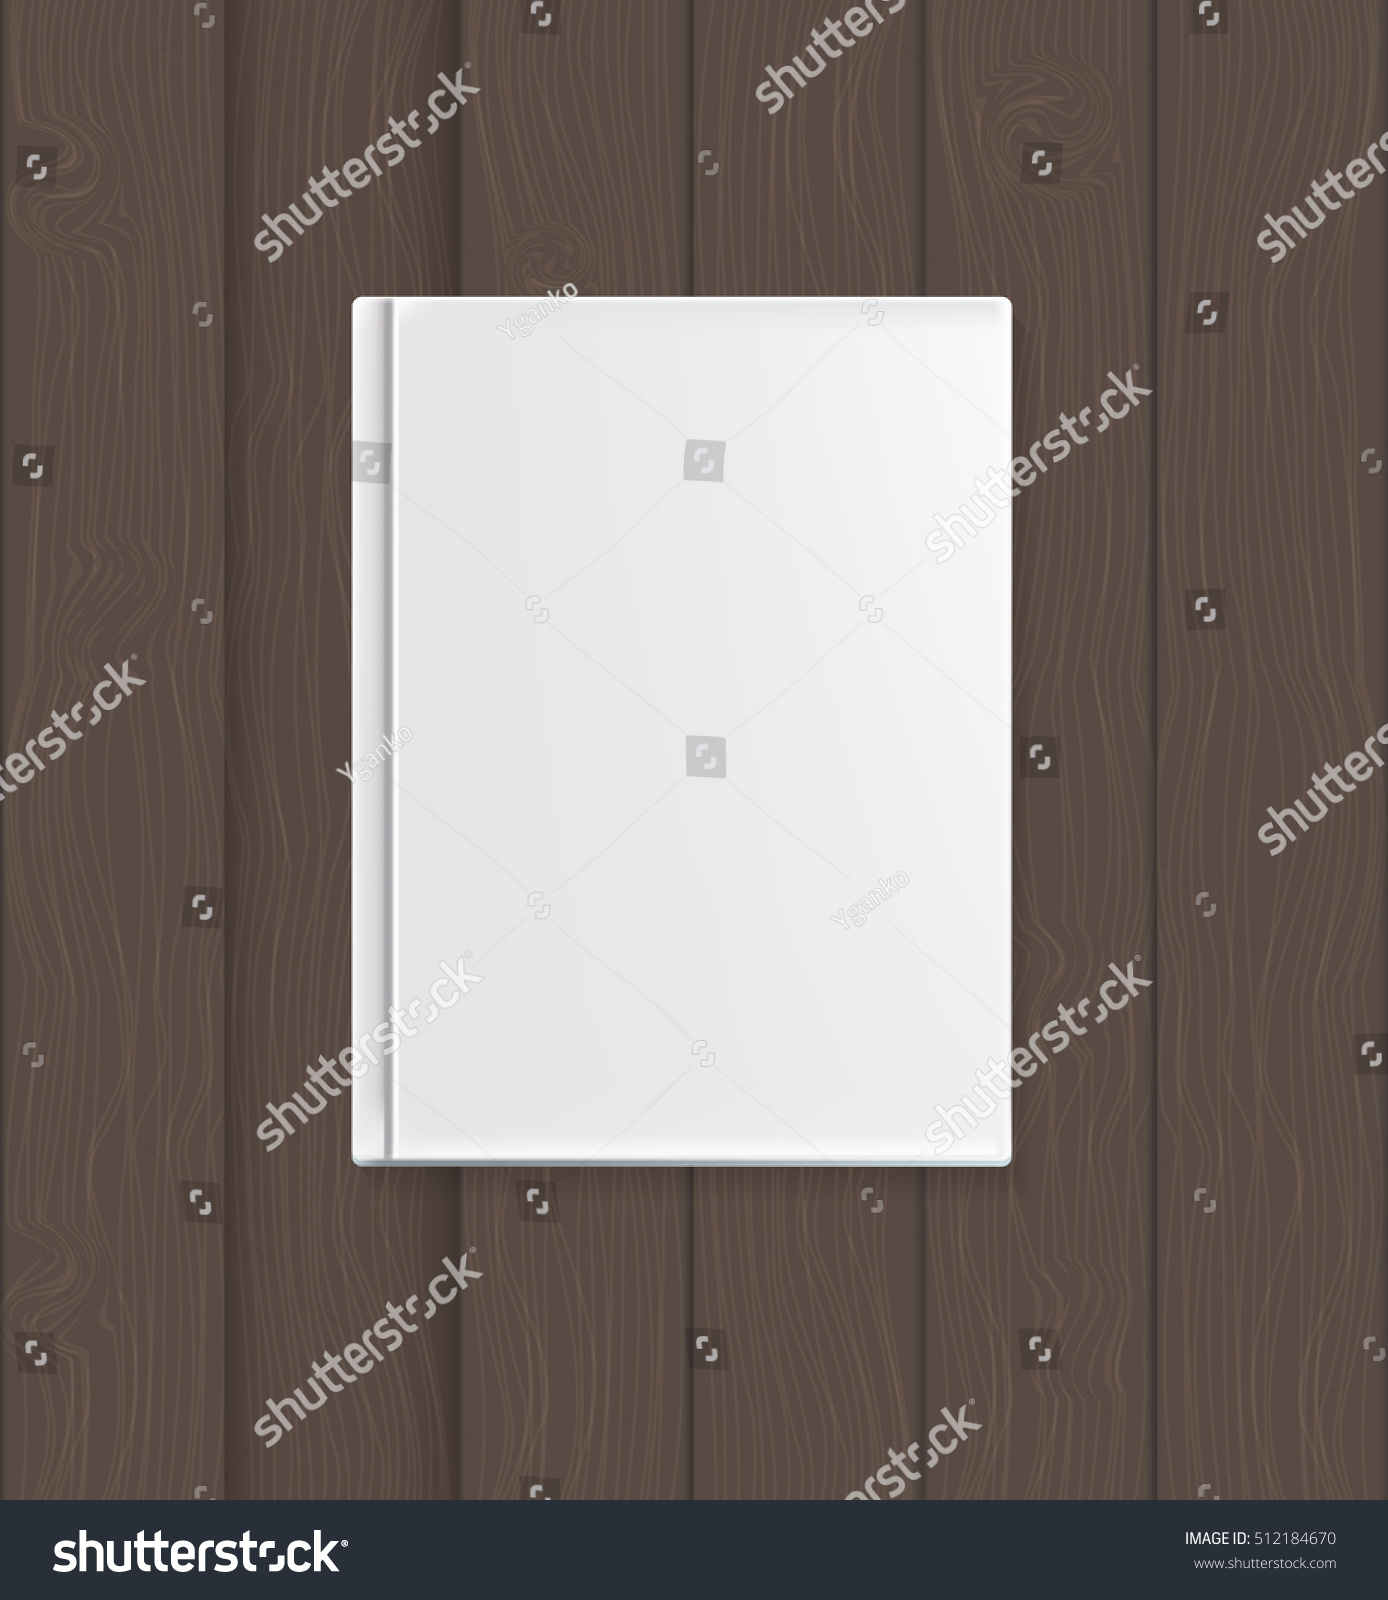 Empty book cover template your text stock illustration for Book cover template illustrator